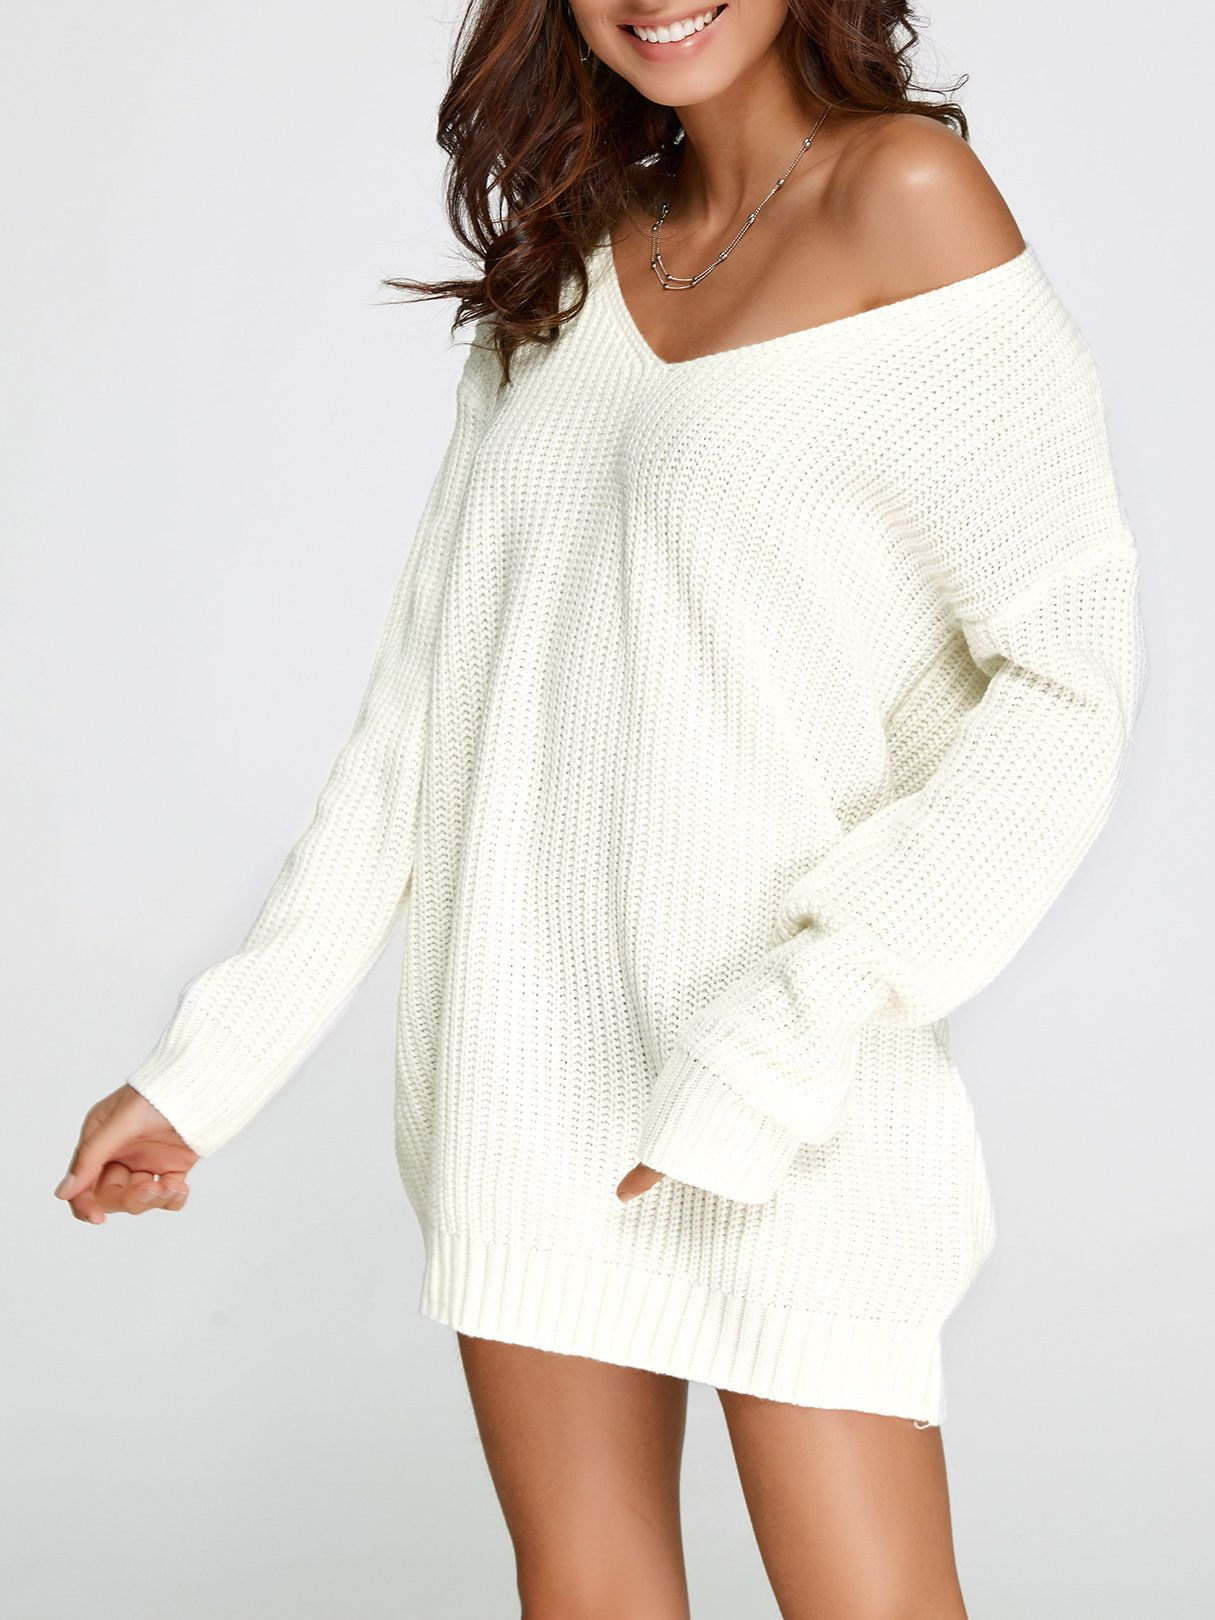 Womens Ladies V Neck Baggy Oversized Mini Dress Ribbed Knitted Knitwear Jumper